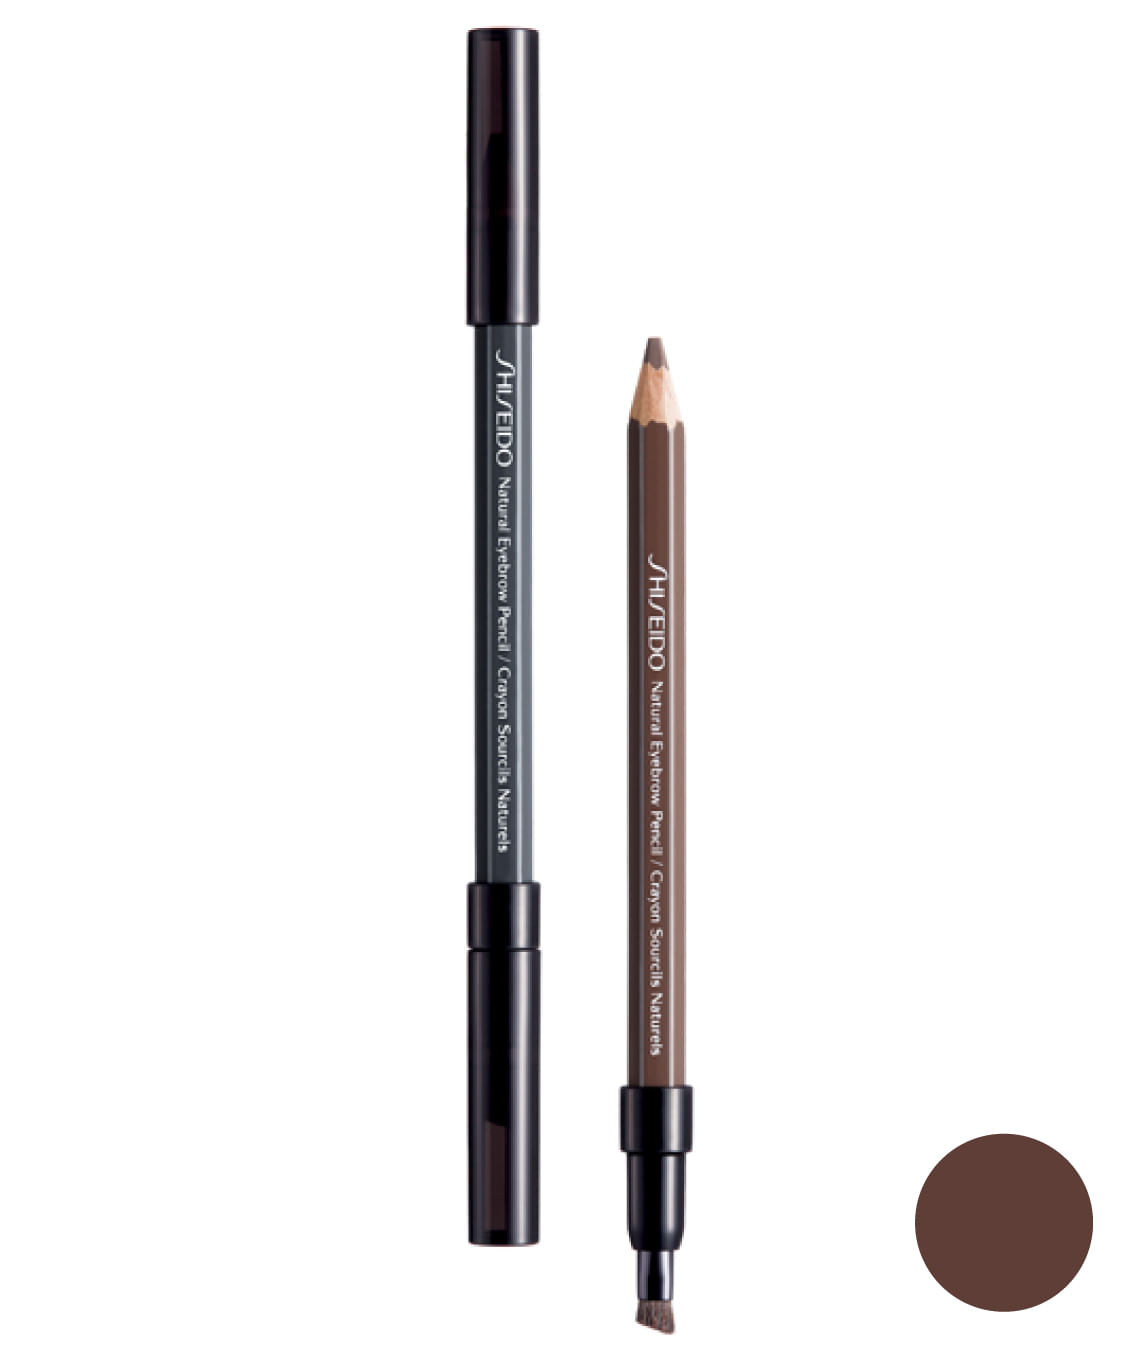 Delineador de Cejas Natural Eyebrow Pencil 603 Café Claro 1 1 g